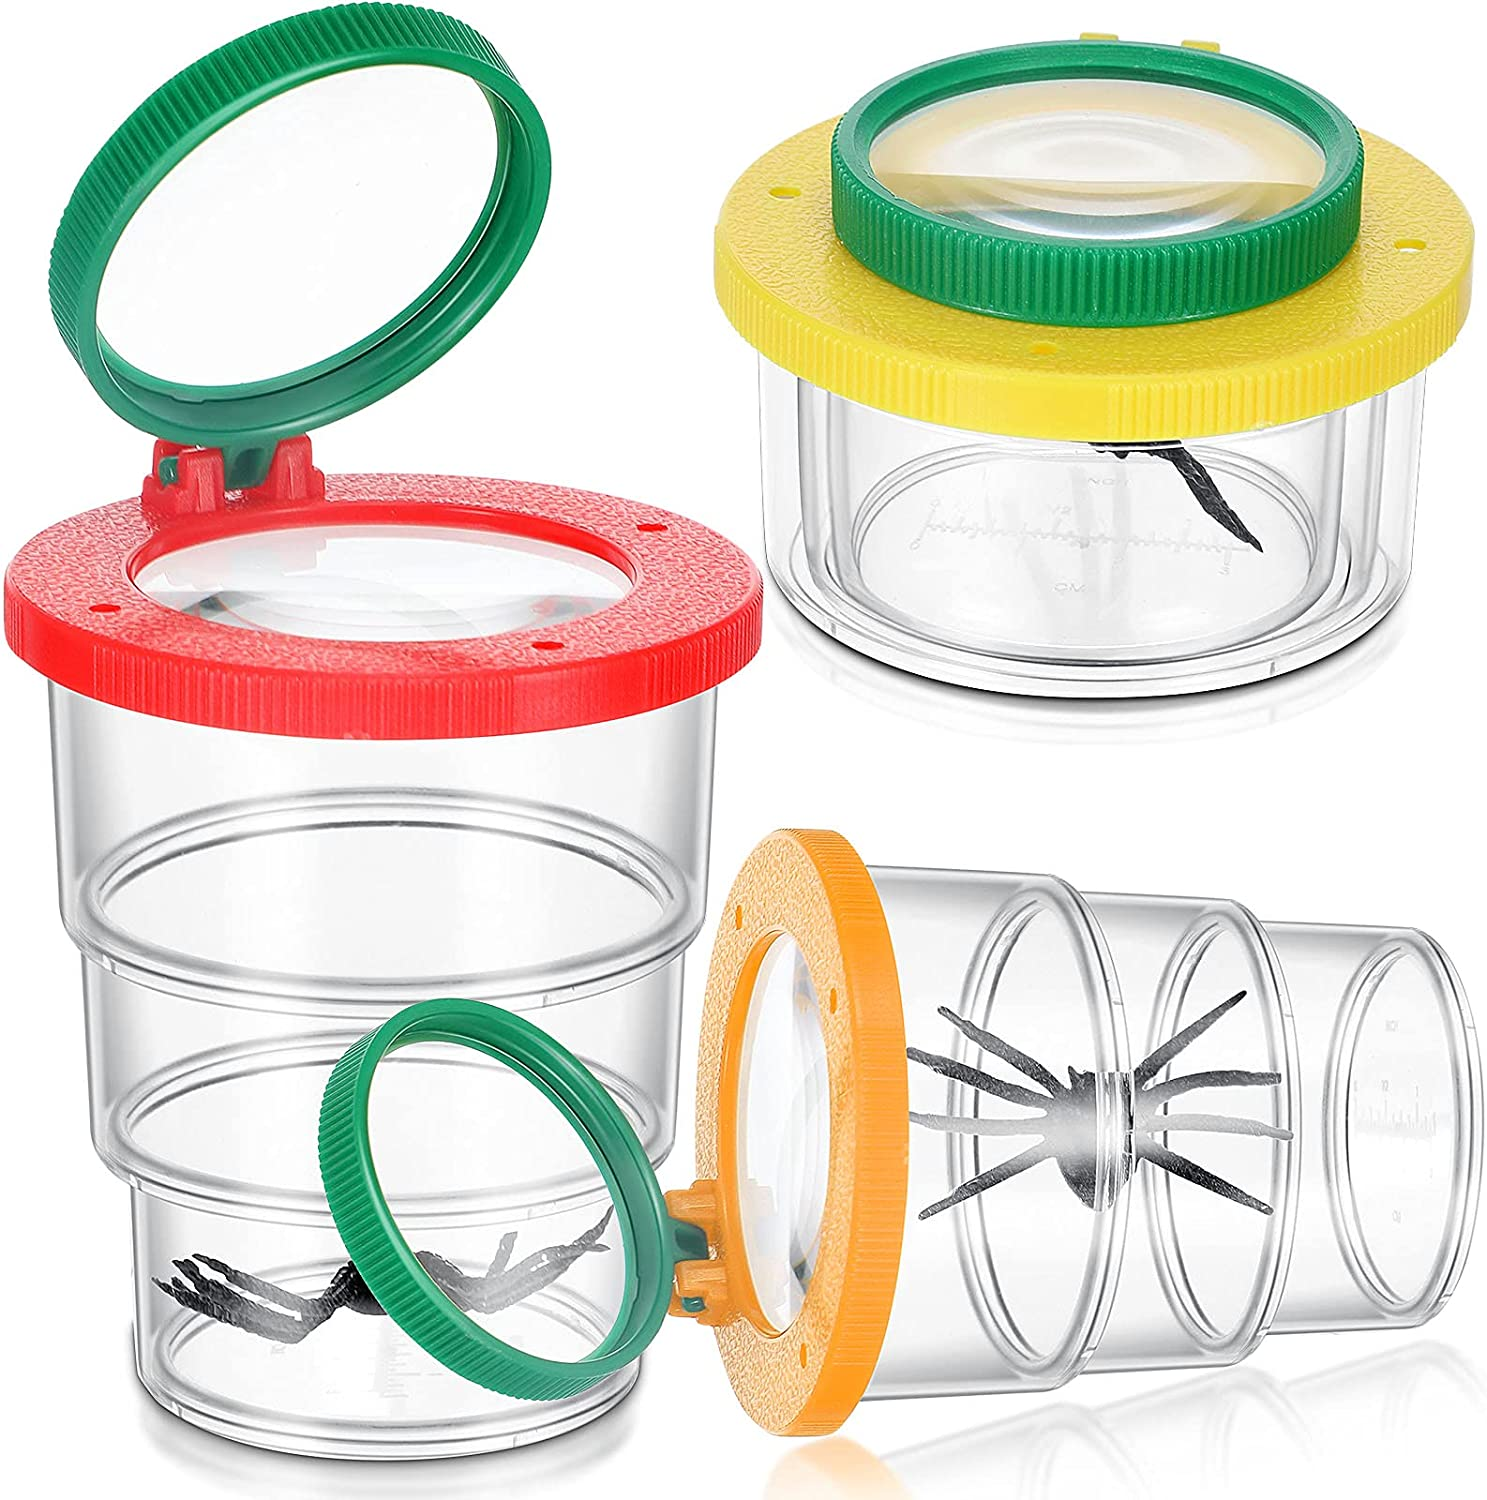 3 Pieces Insert Bug Viewer Magnifier Kit Stretchable Critter Insert...